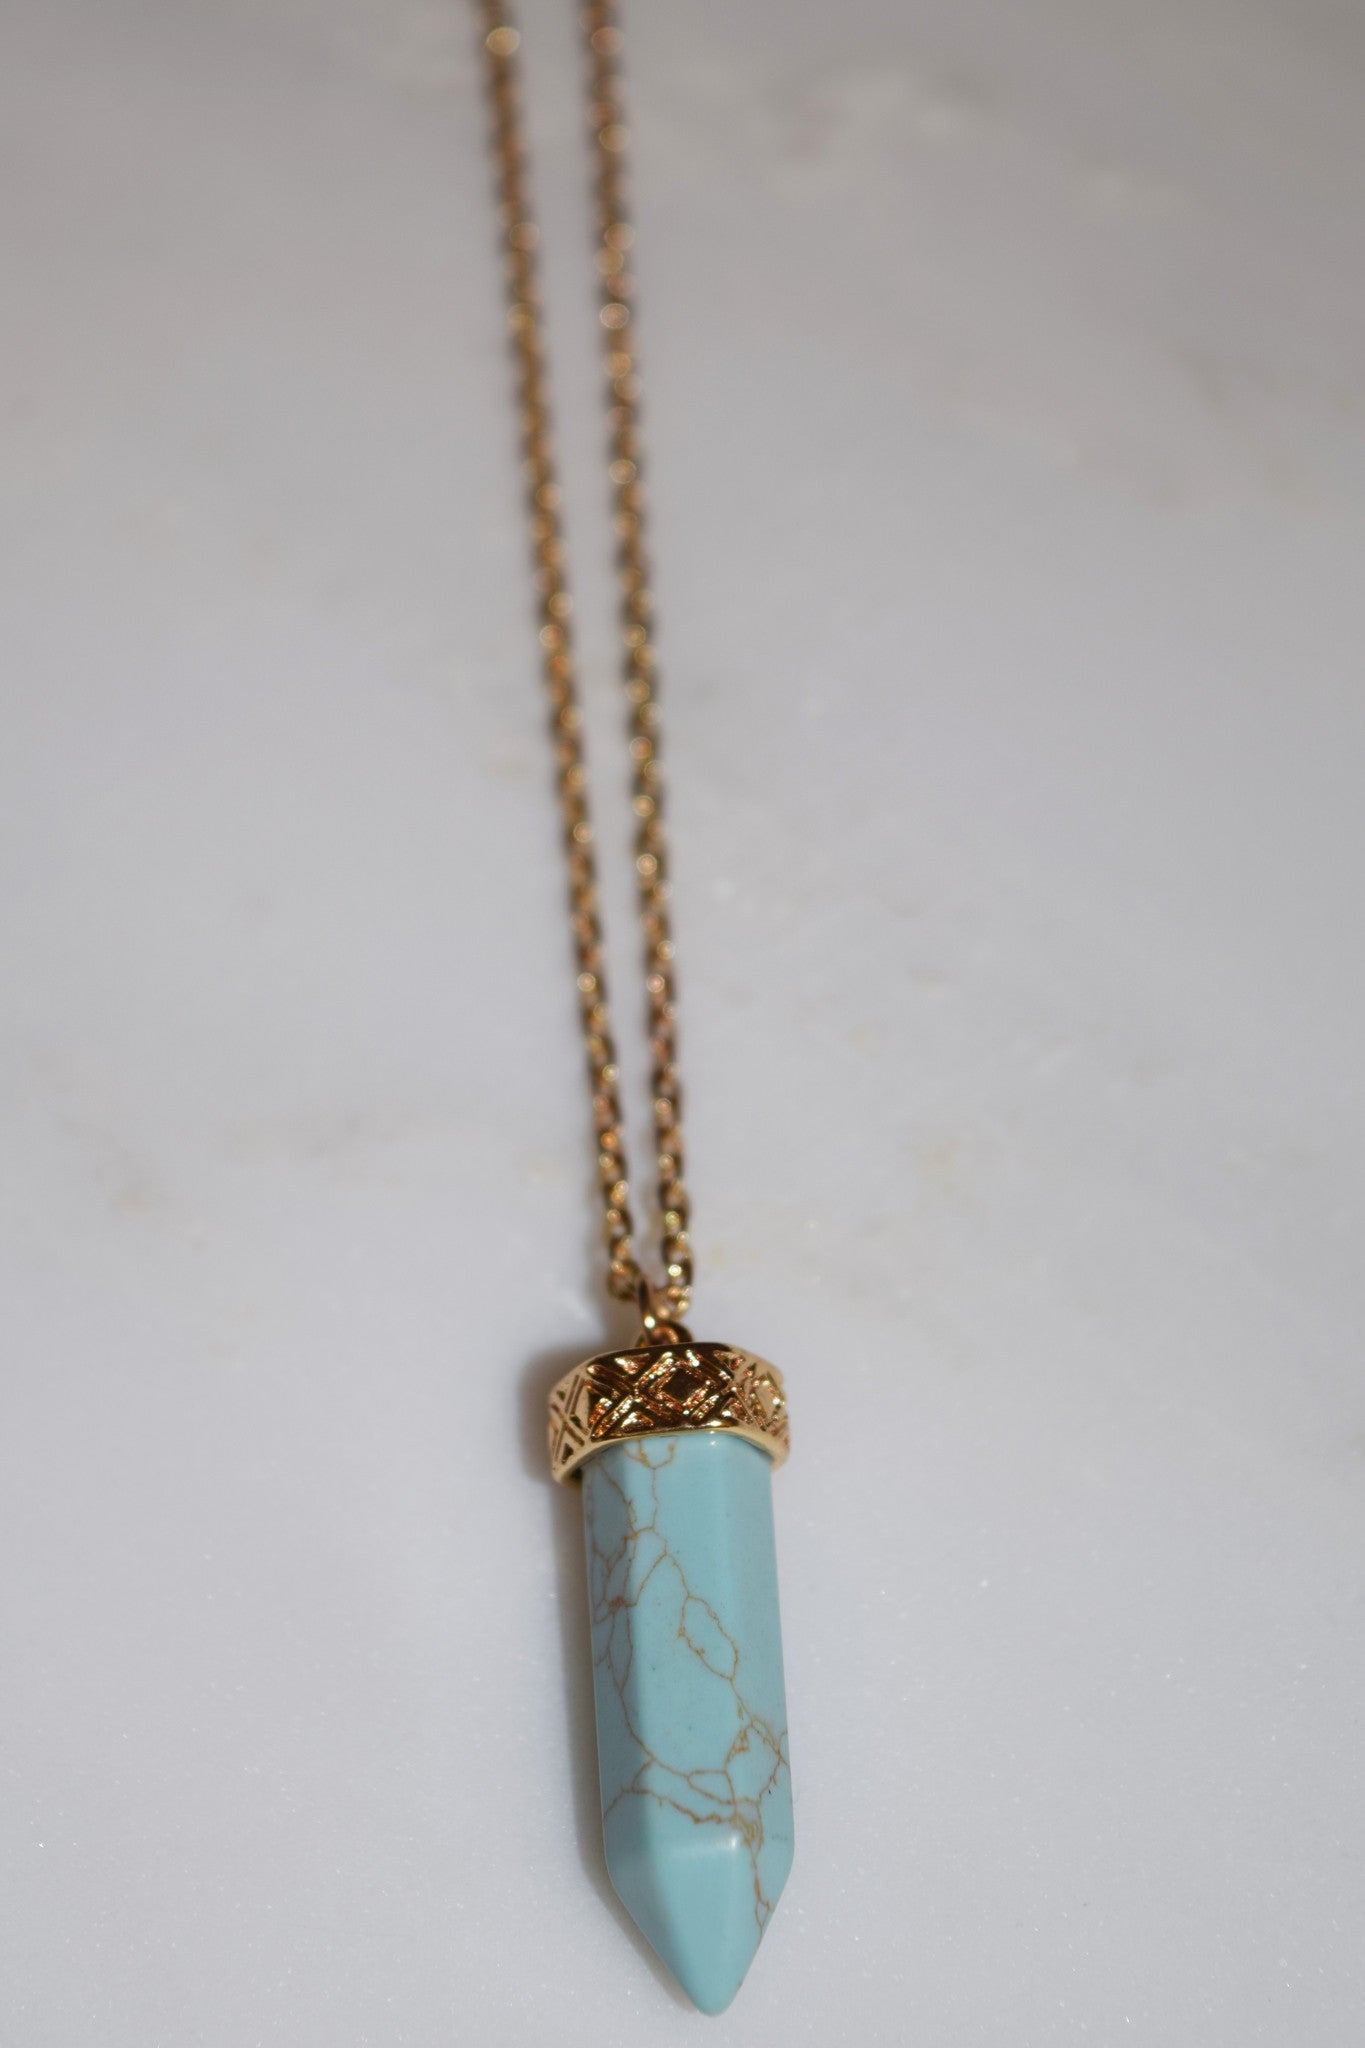 Zella Stone: Necklace - Turquoise Stone Necklace - Icco